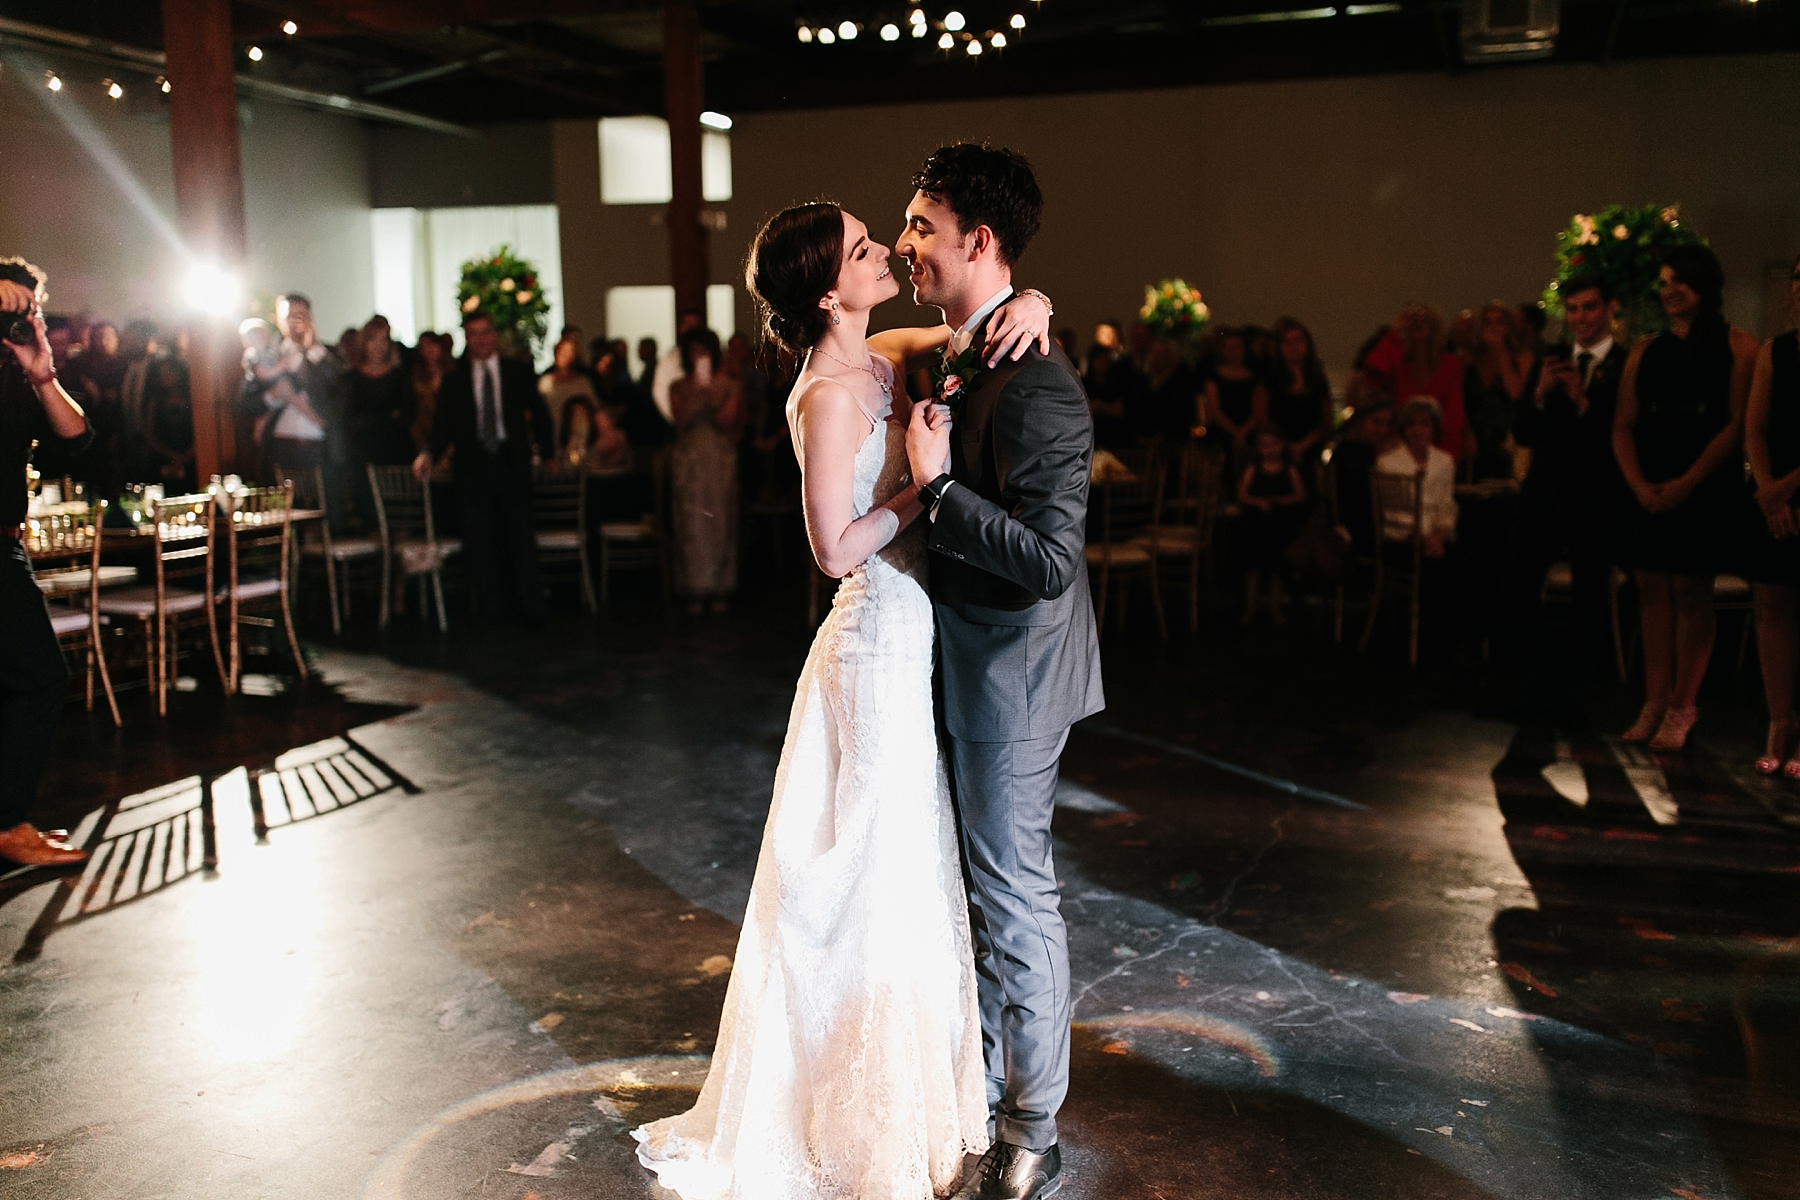 Emily + Caleb _ an elegant, intentional, industrial style wedding with navy + gold accents at 6500 in Dallas, TX by North Texas Wedding Photographer Rachel Meagan Photography _ 136